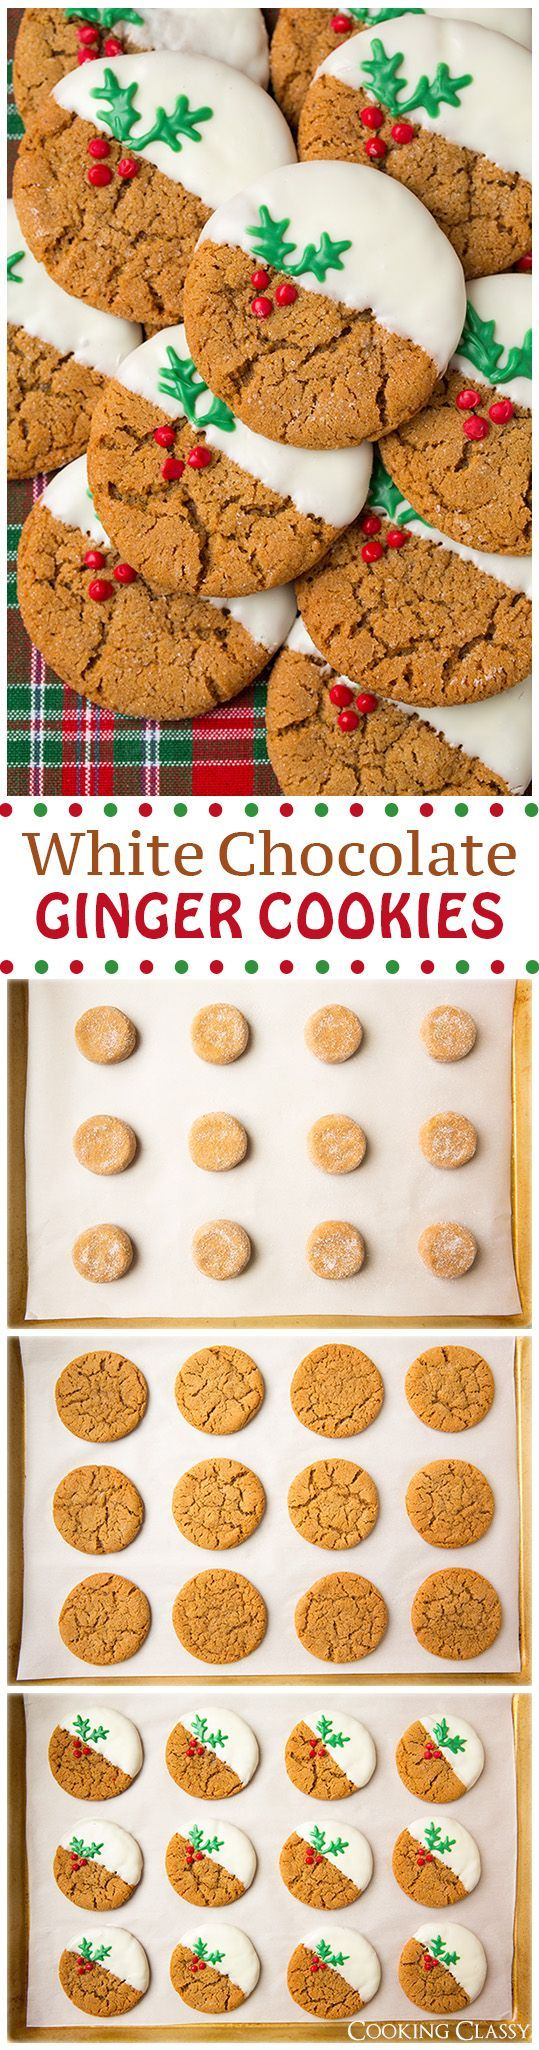 White Chocolate Dipped Ginger Cookies - These cookies are SO GOOD!! So much gingery flavor and the white chocolate is the perfect compliment.